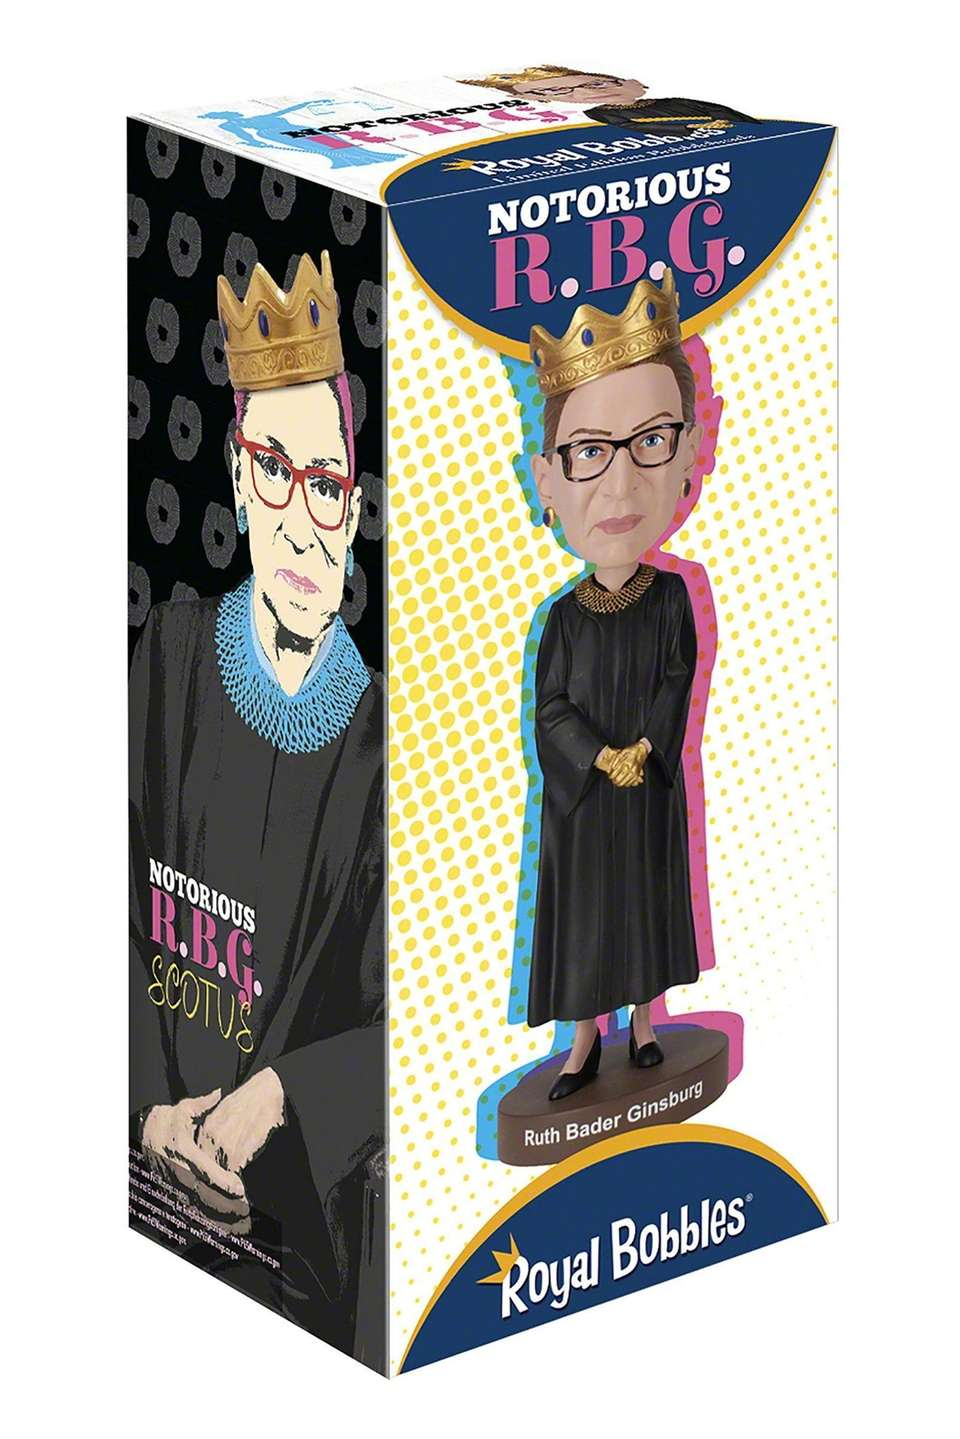 Gift the Ruth Bader Ginsburg admirer in your